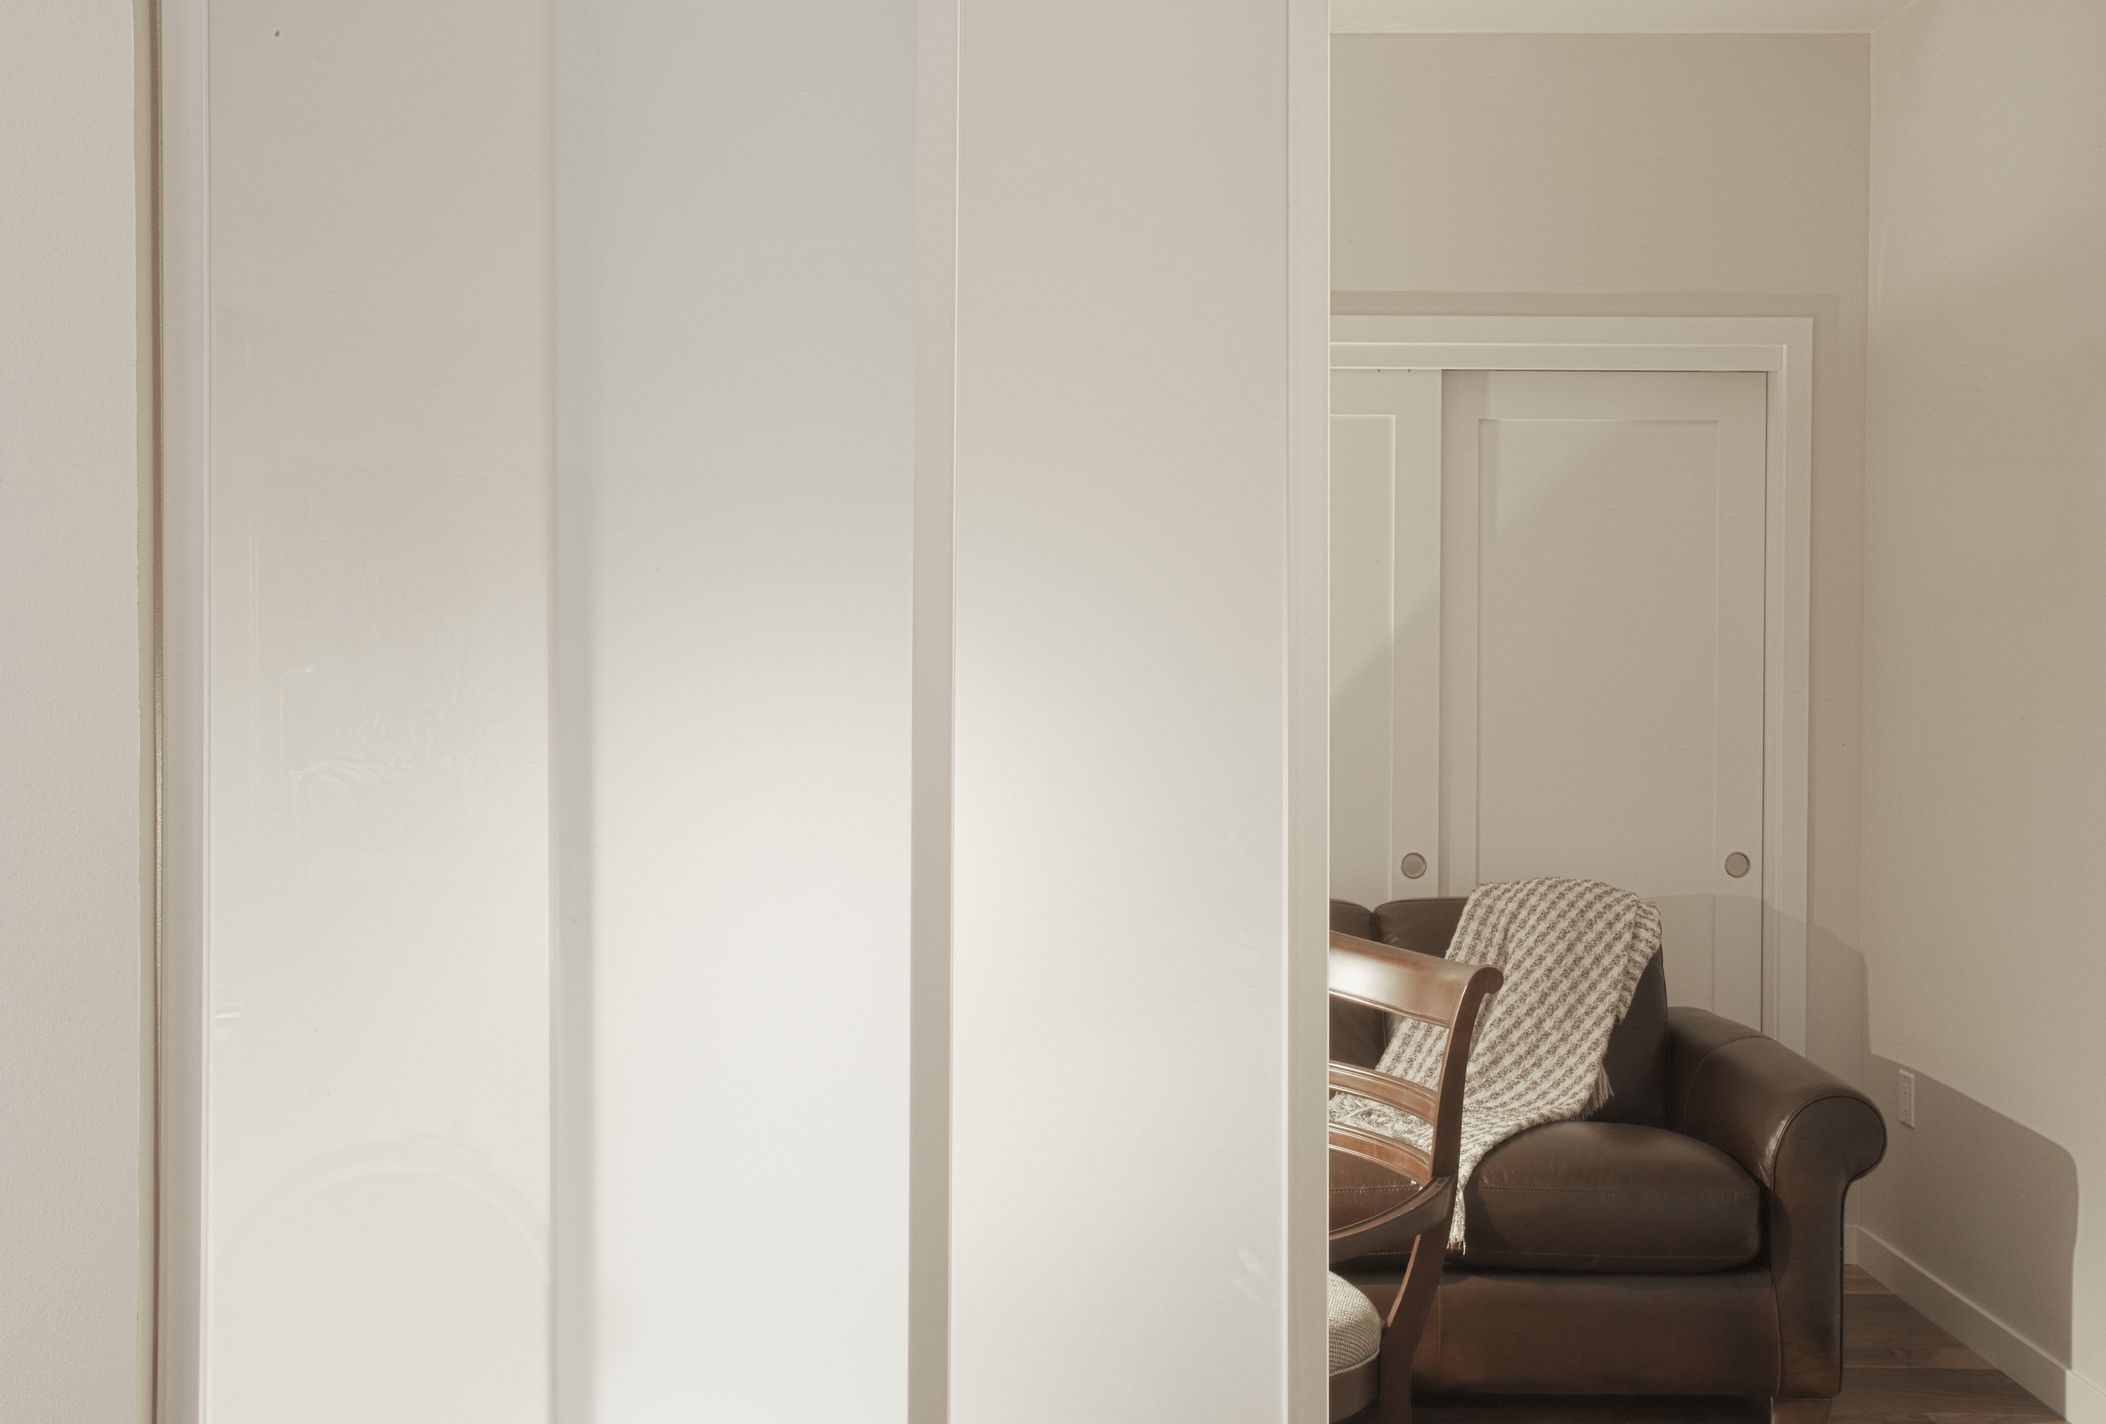 Living room with frosted glass sliding door dividers